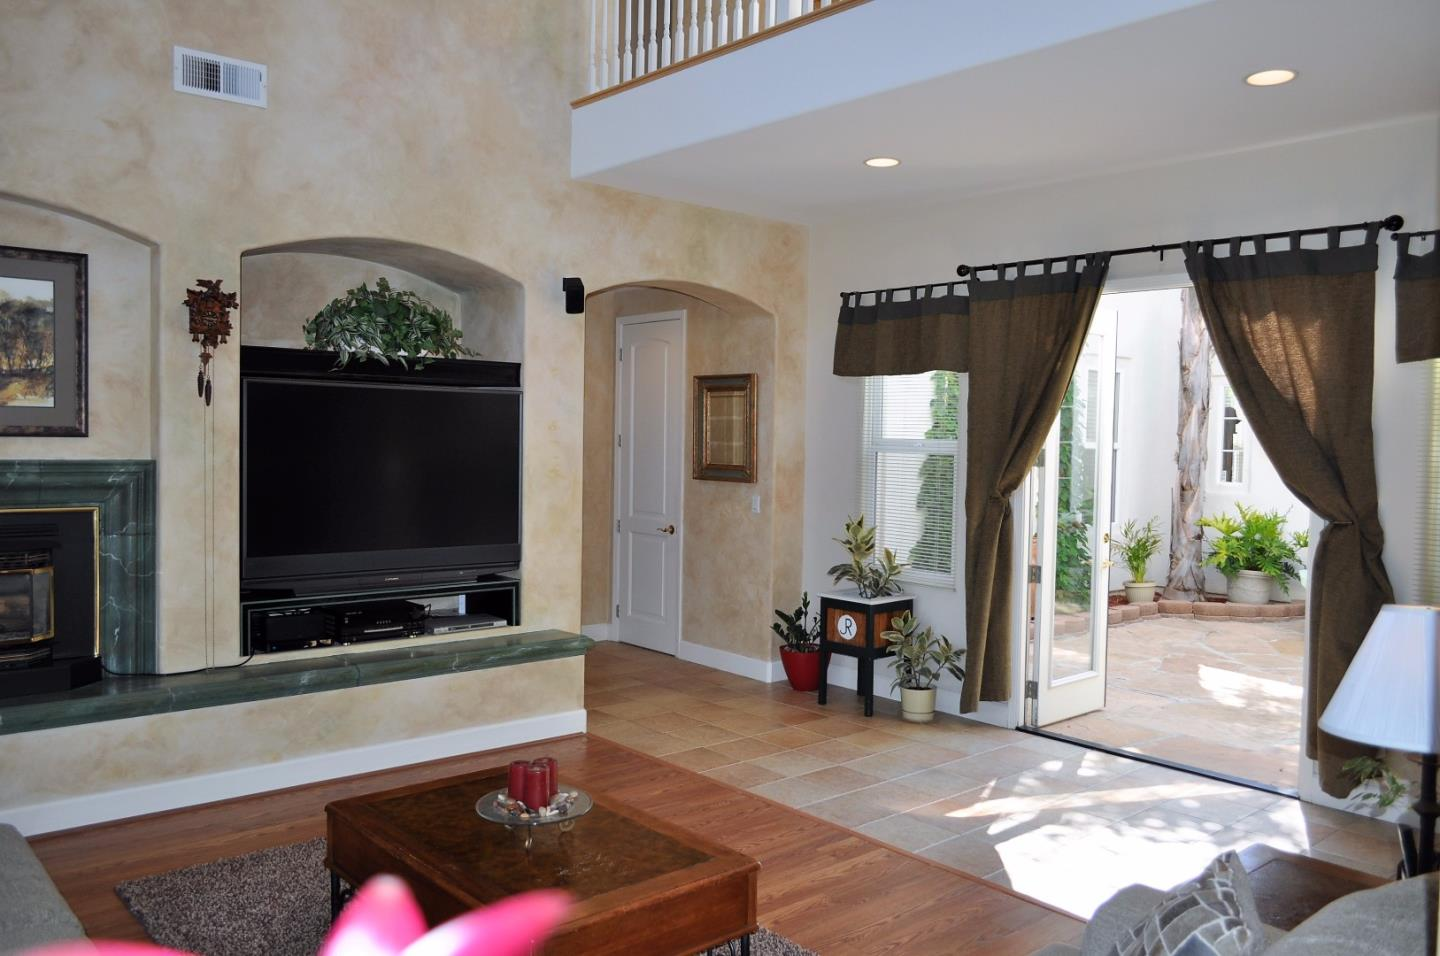 Additional photo for property listing at 2610 Club Drive 2610 Club Drive Gilroy, カリフォルニア 95020 アメリカ合衆国